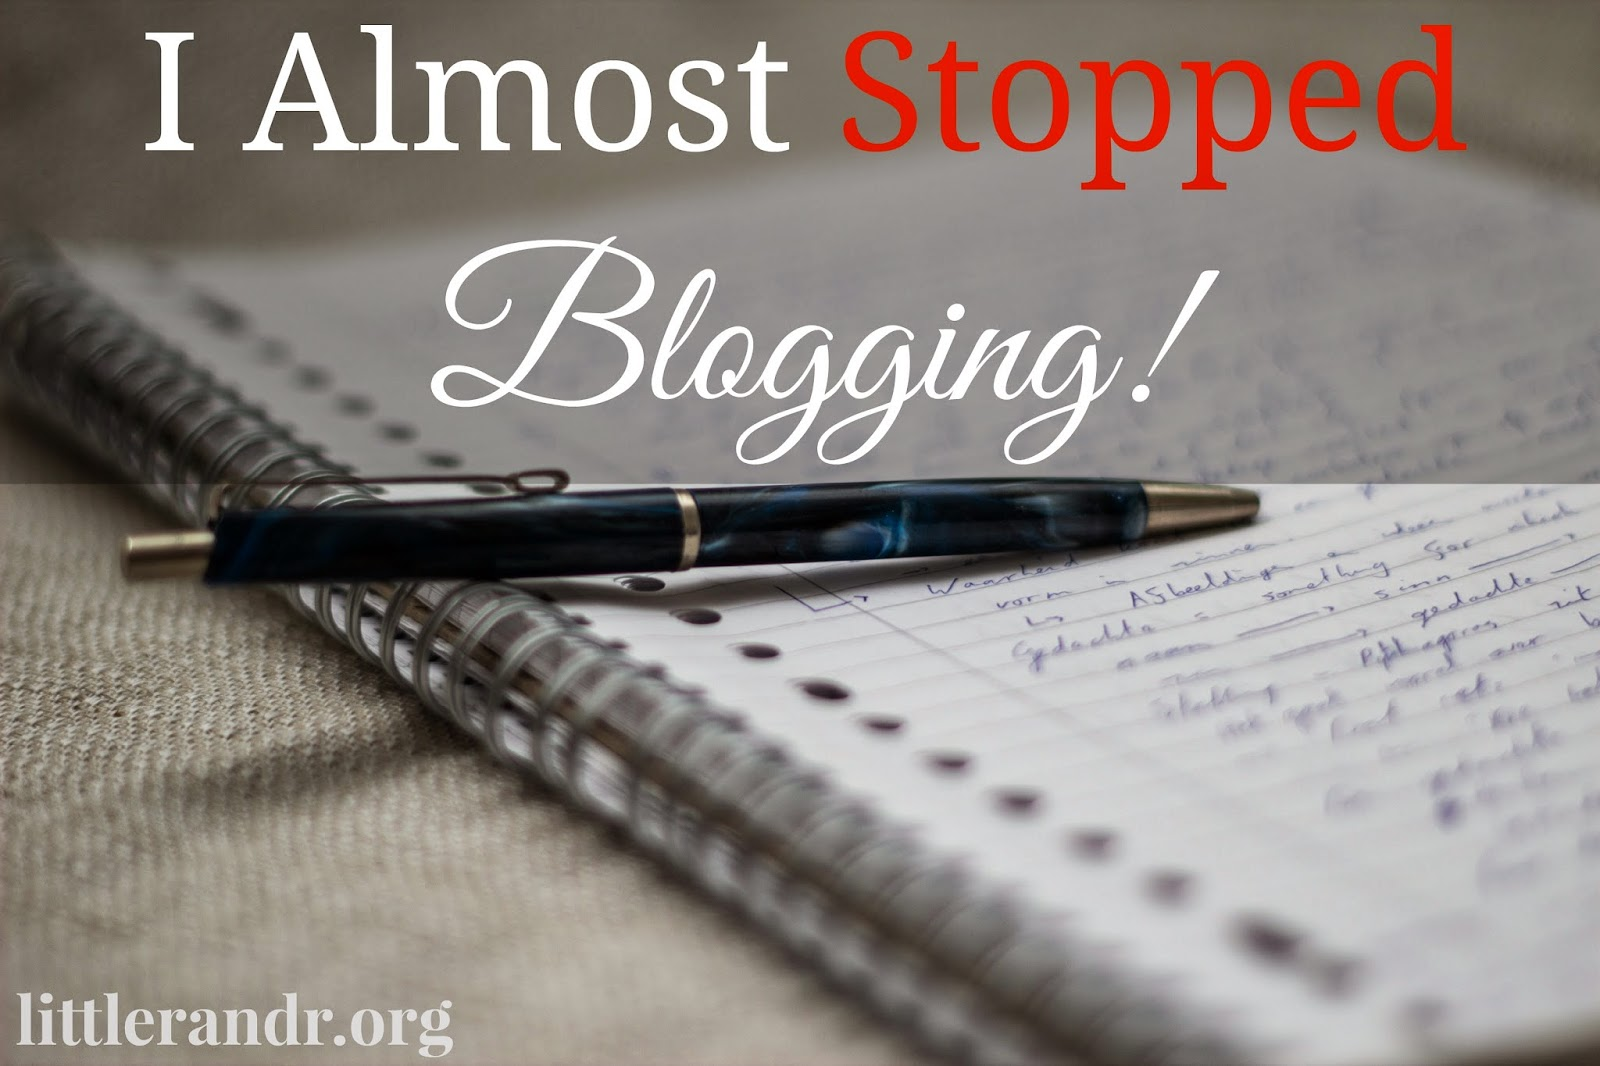 I Almost Stopped Blogging